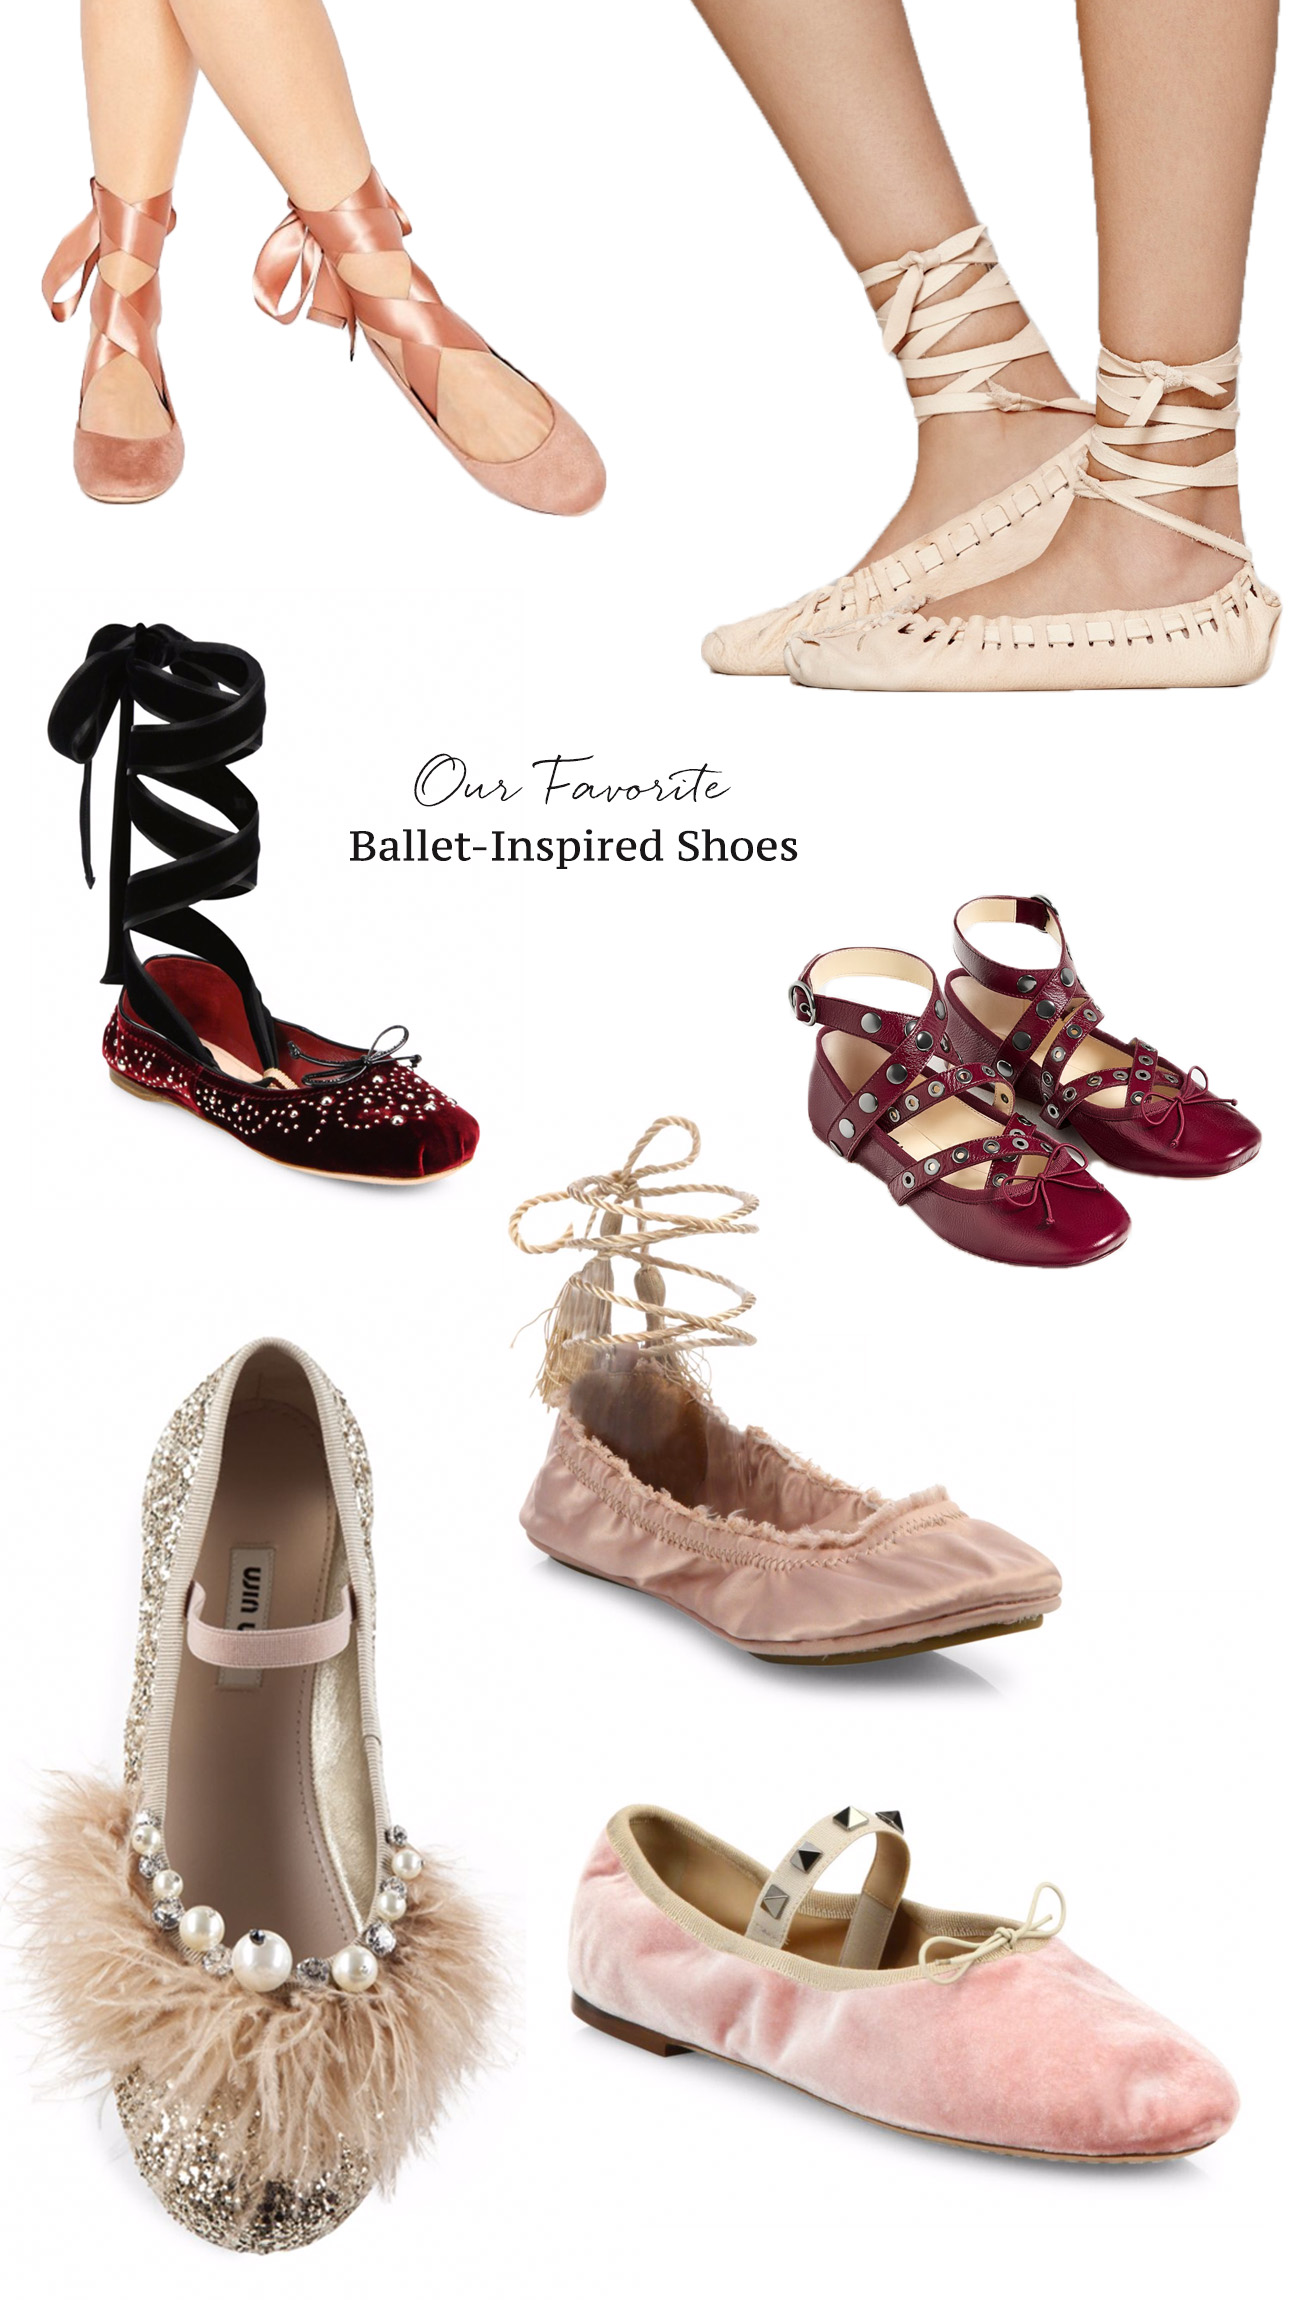 ballet-inspired shoes